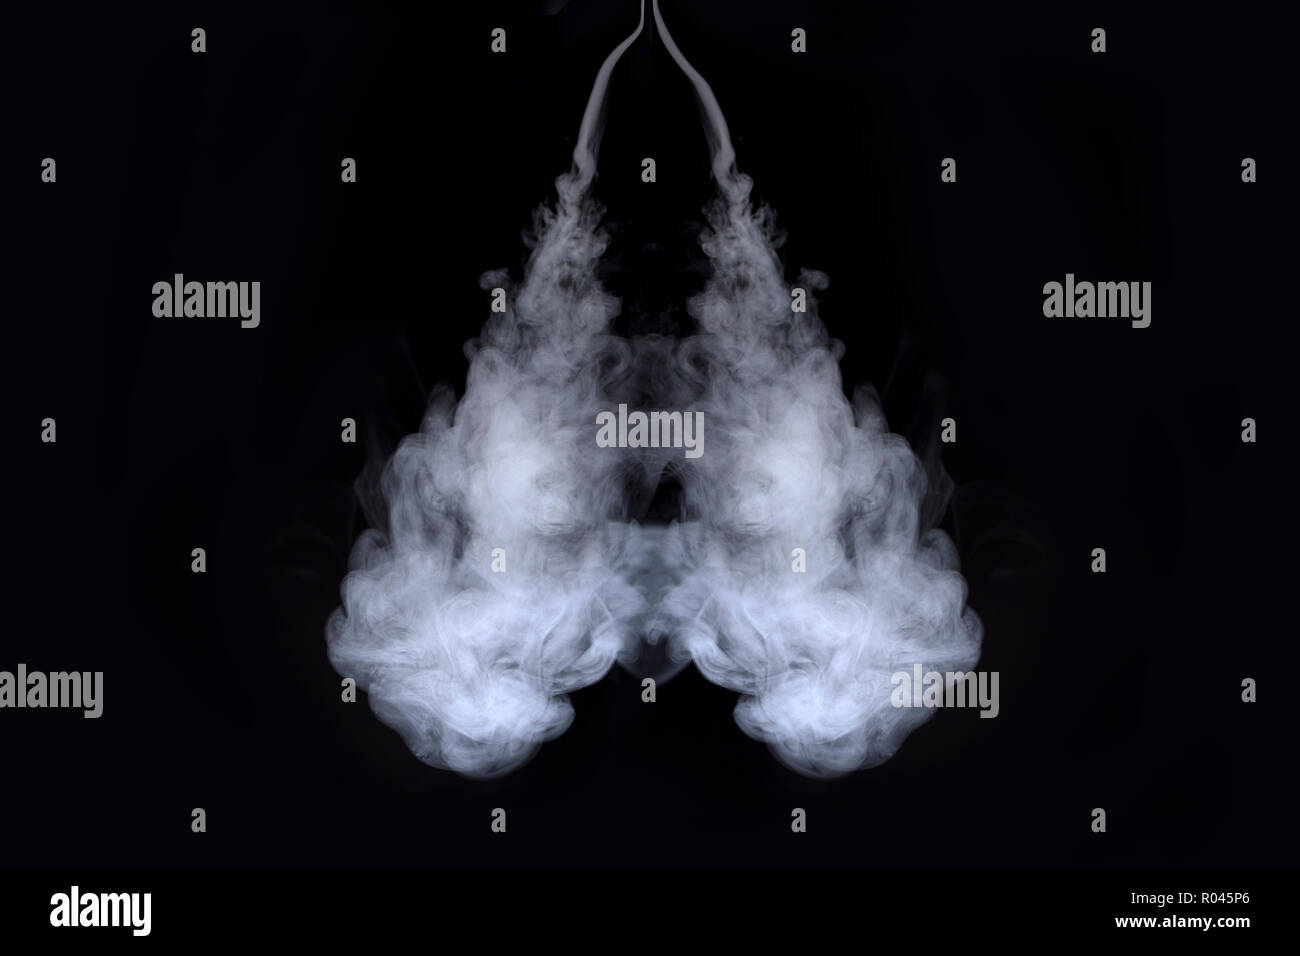 lungs of smoke on  black background - Stock Image